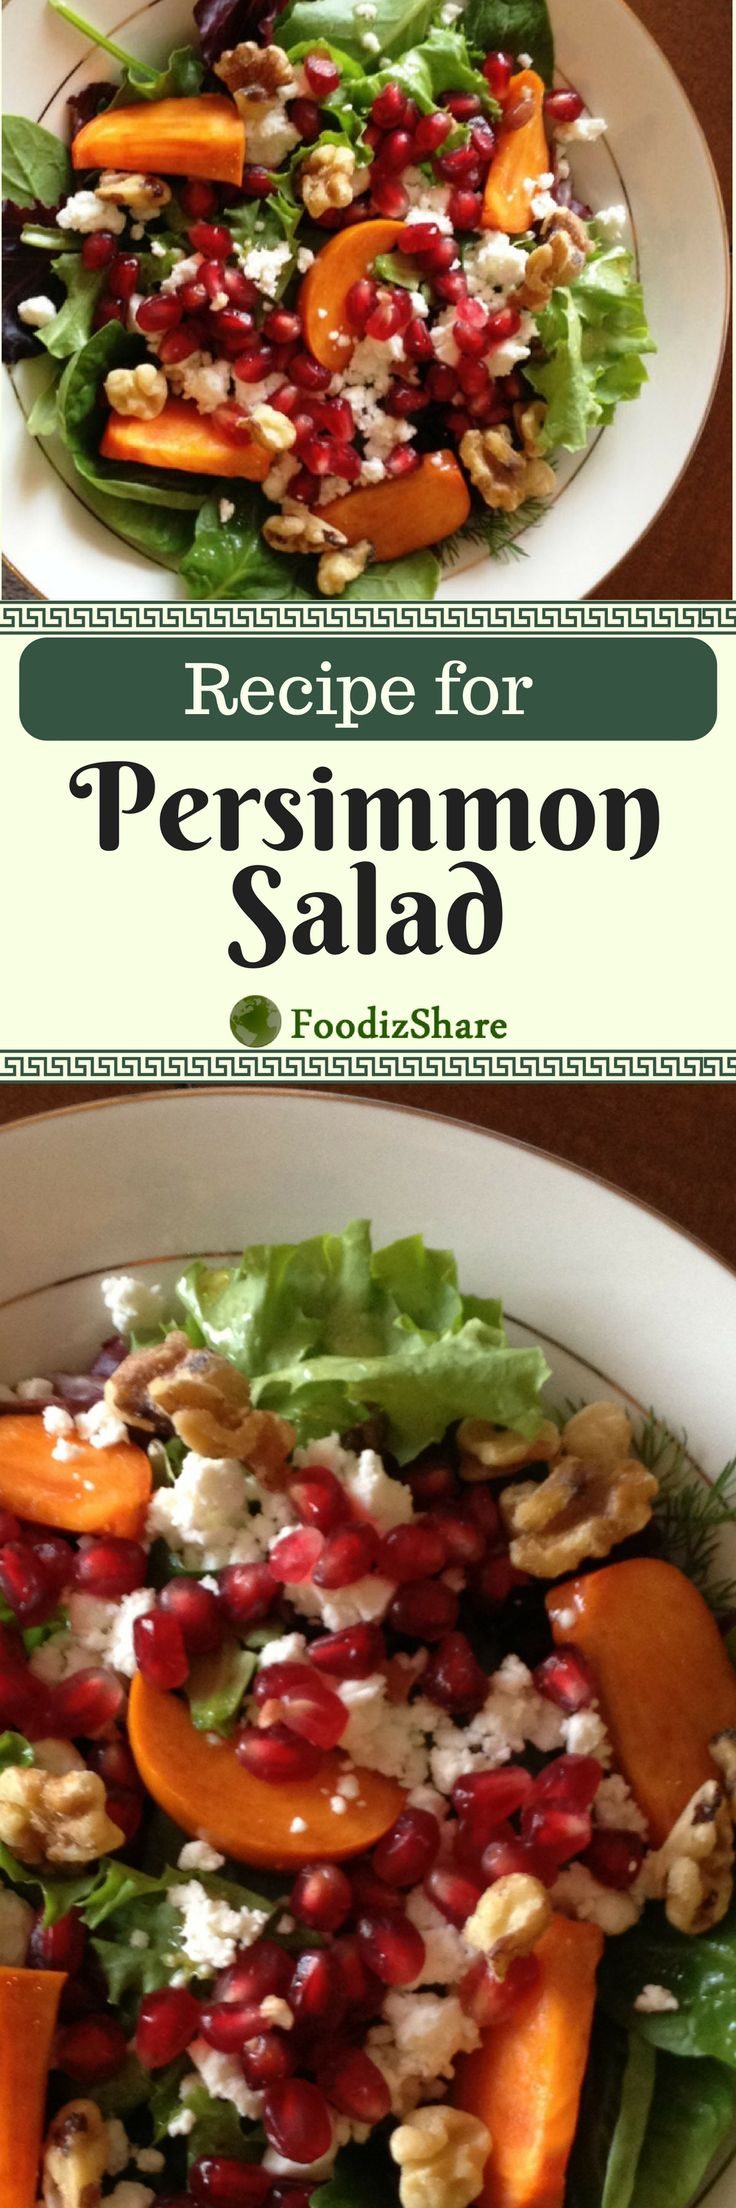 Persimmon Salad with pomegranate, walnuts and goat cheese.